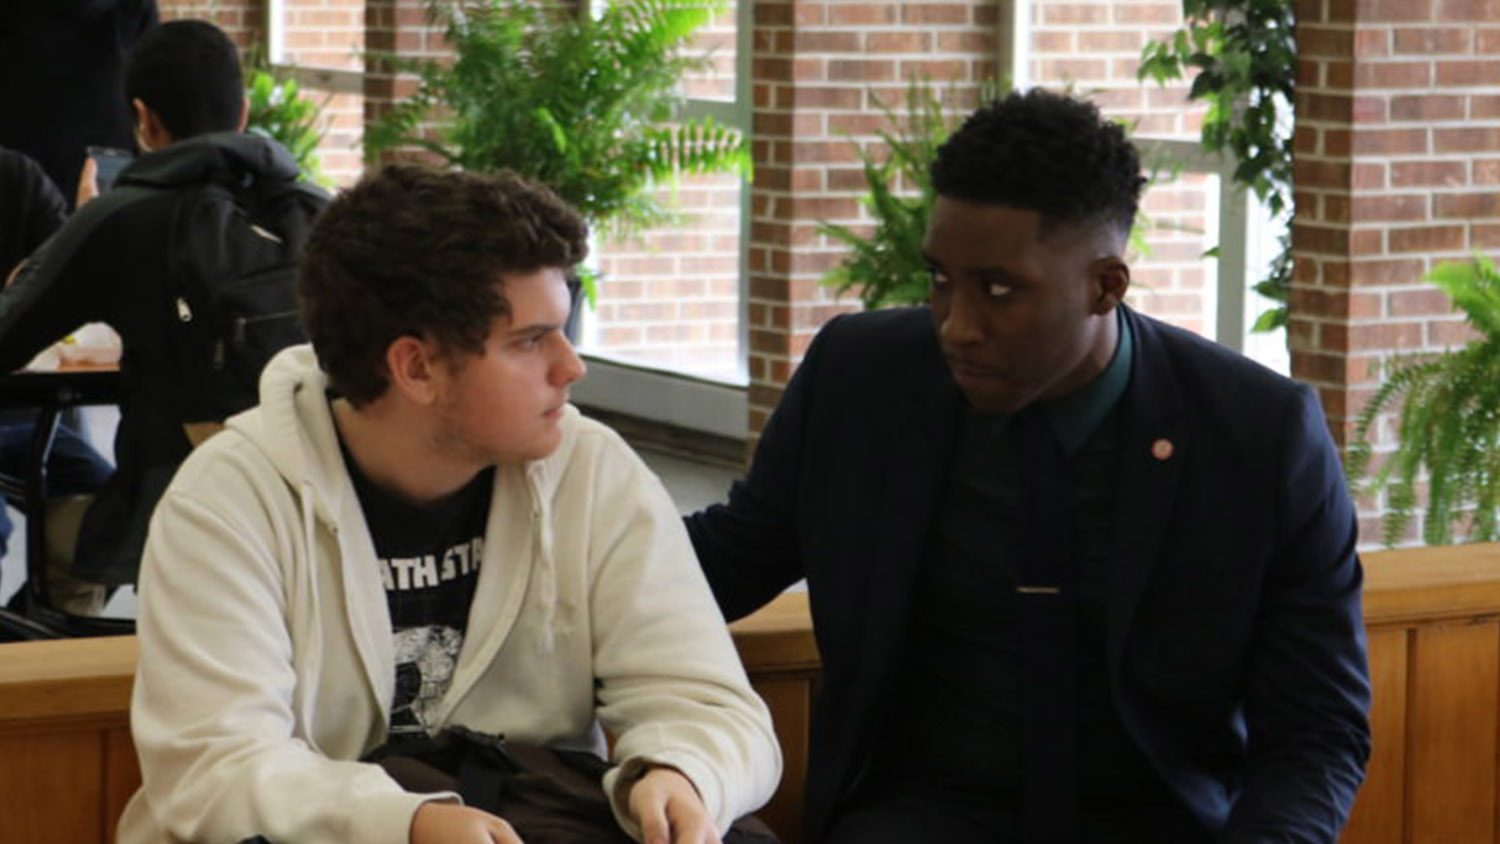 Principal Donnell Cannon, right, sits with a student at lunch at North Edgecombe High School.